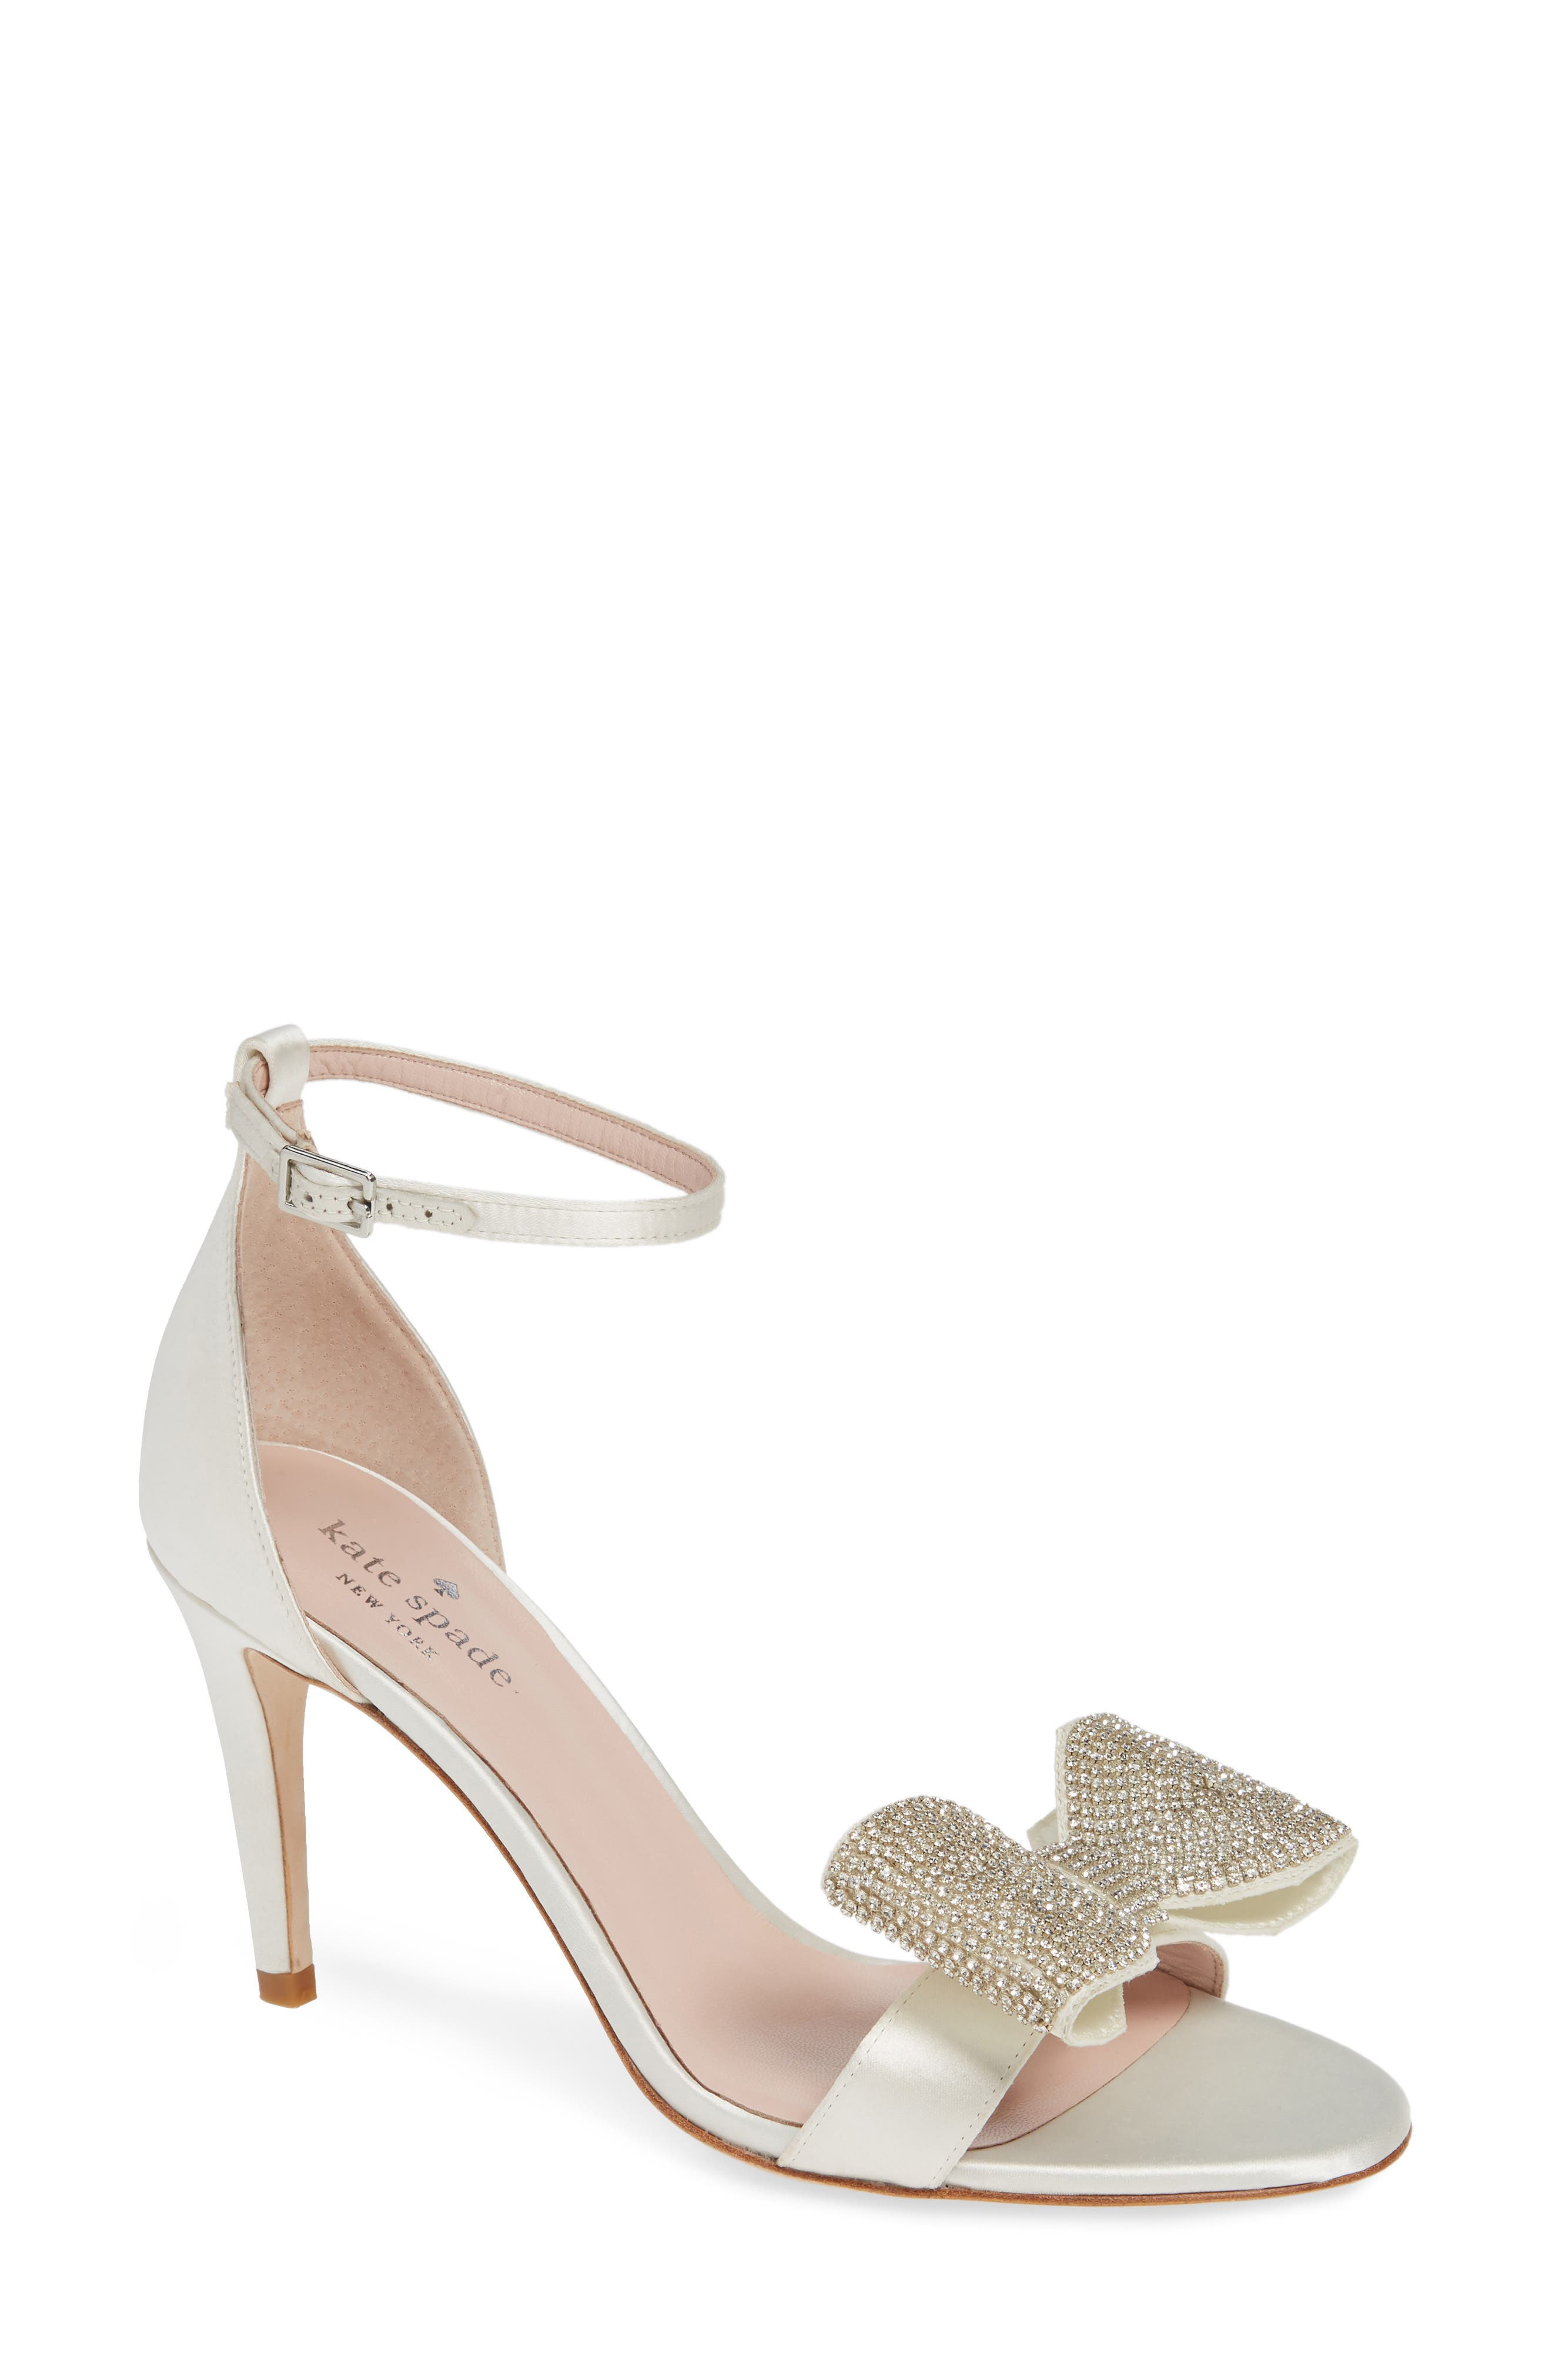 gweneth crystal bow ankle strap sandal,                             Main thumbnail 1, color,                             900